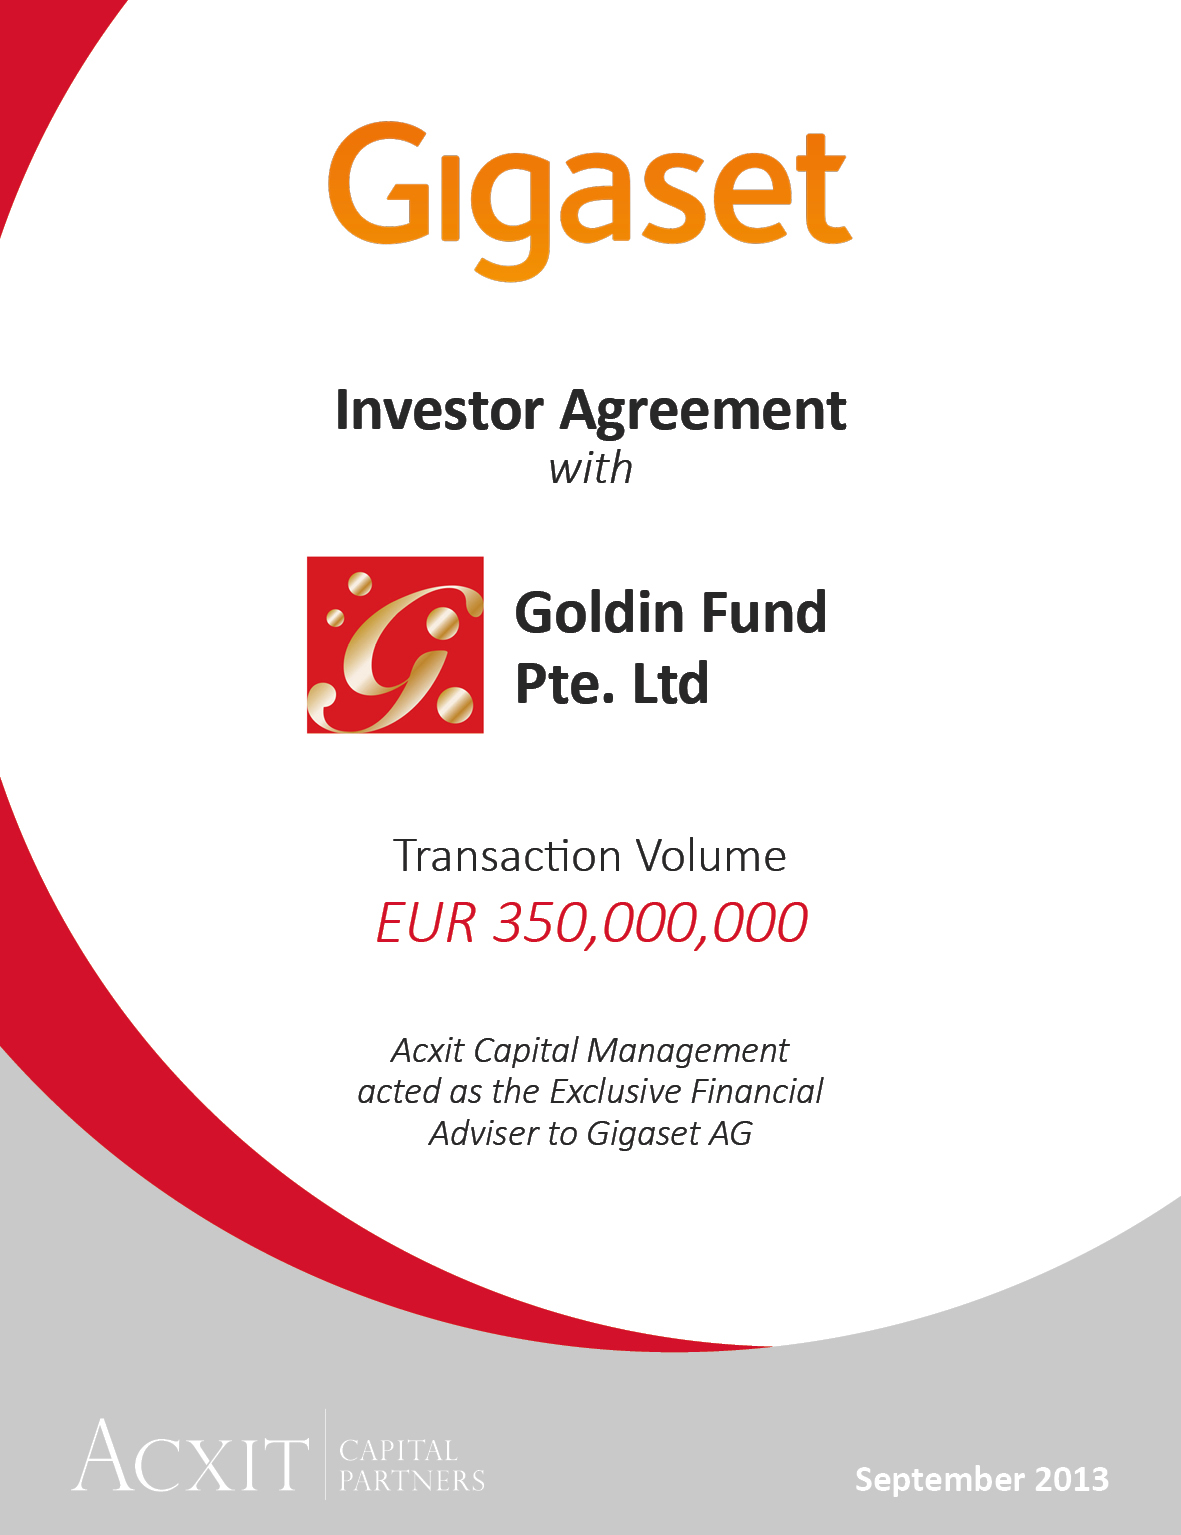 Gigaset & Goldin Fund Pte. Ltd